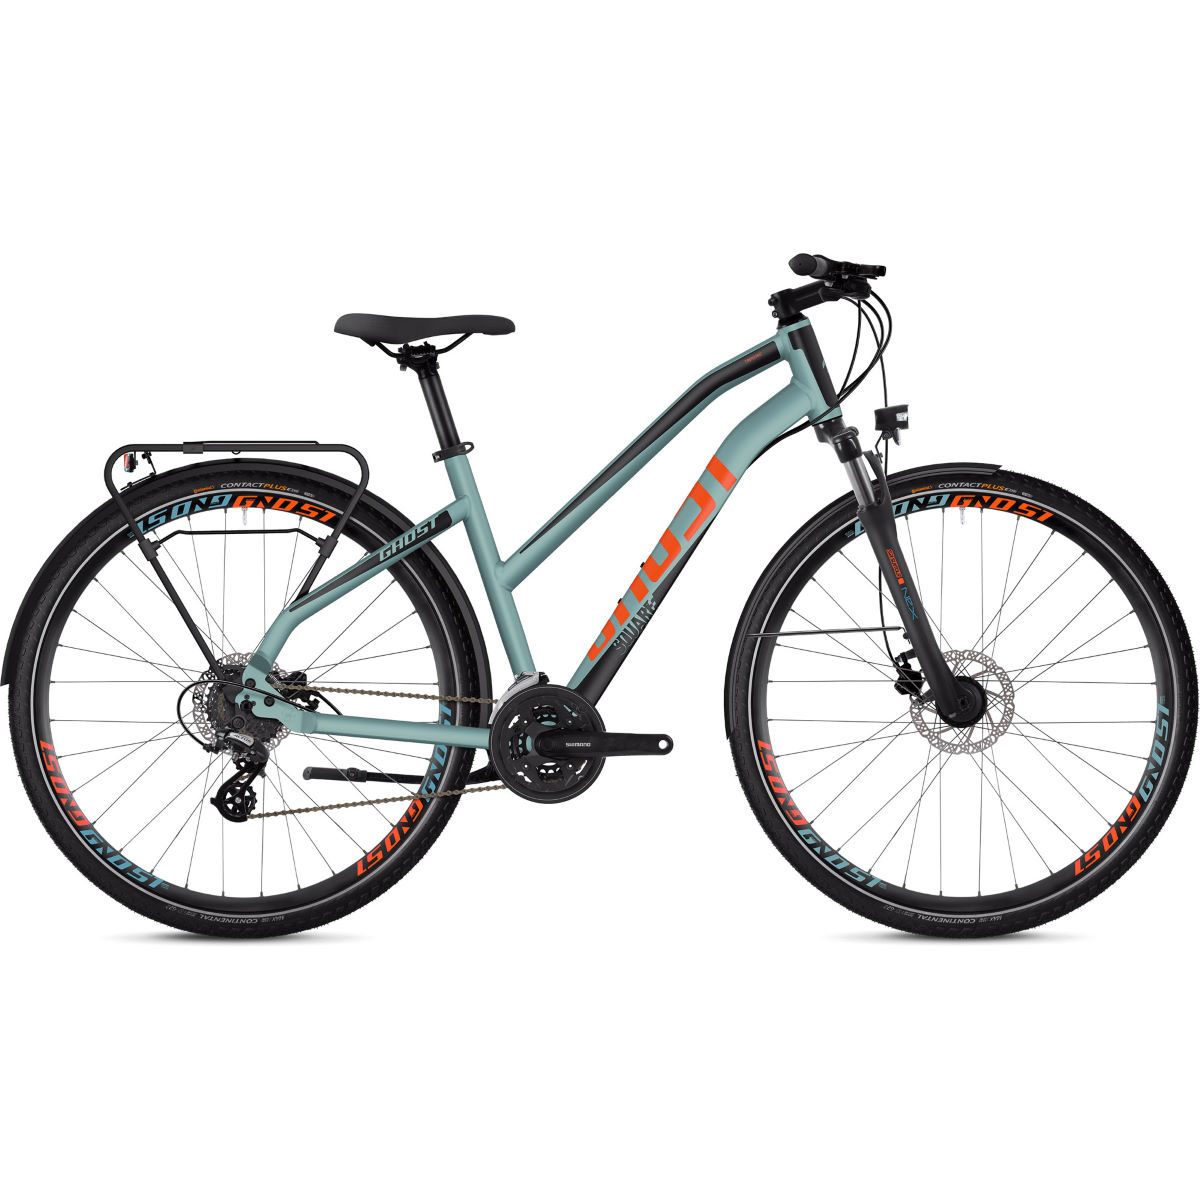 Ghost Ghost Square Trekking 2.8 W Urban Bike (2020)   Hard Tail Mountain Bikes